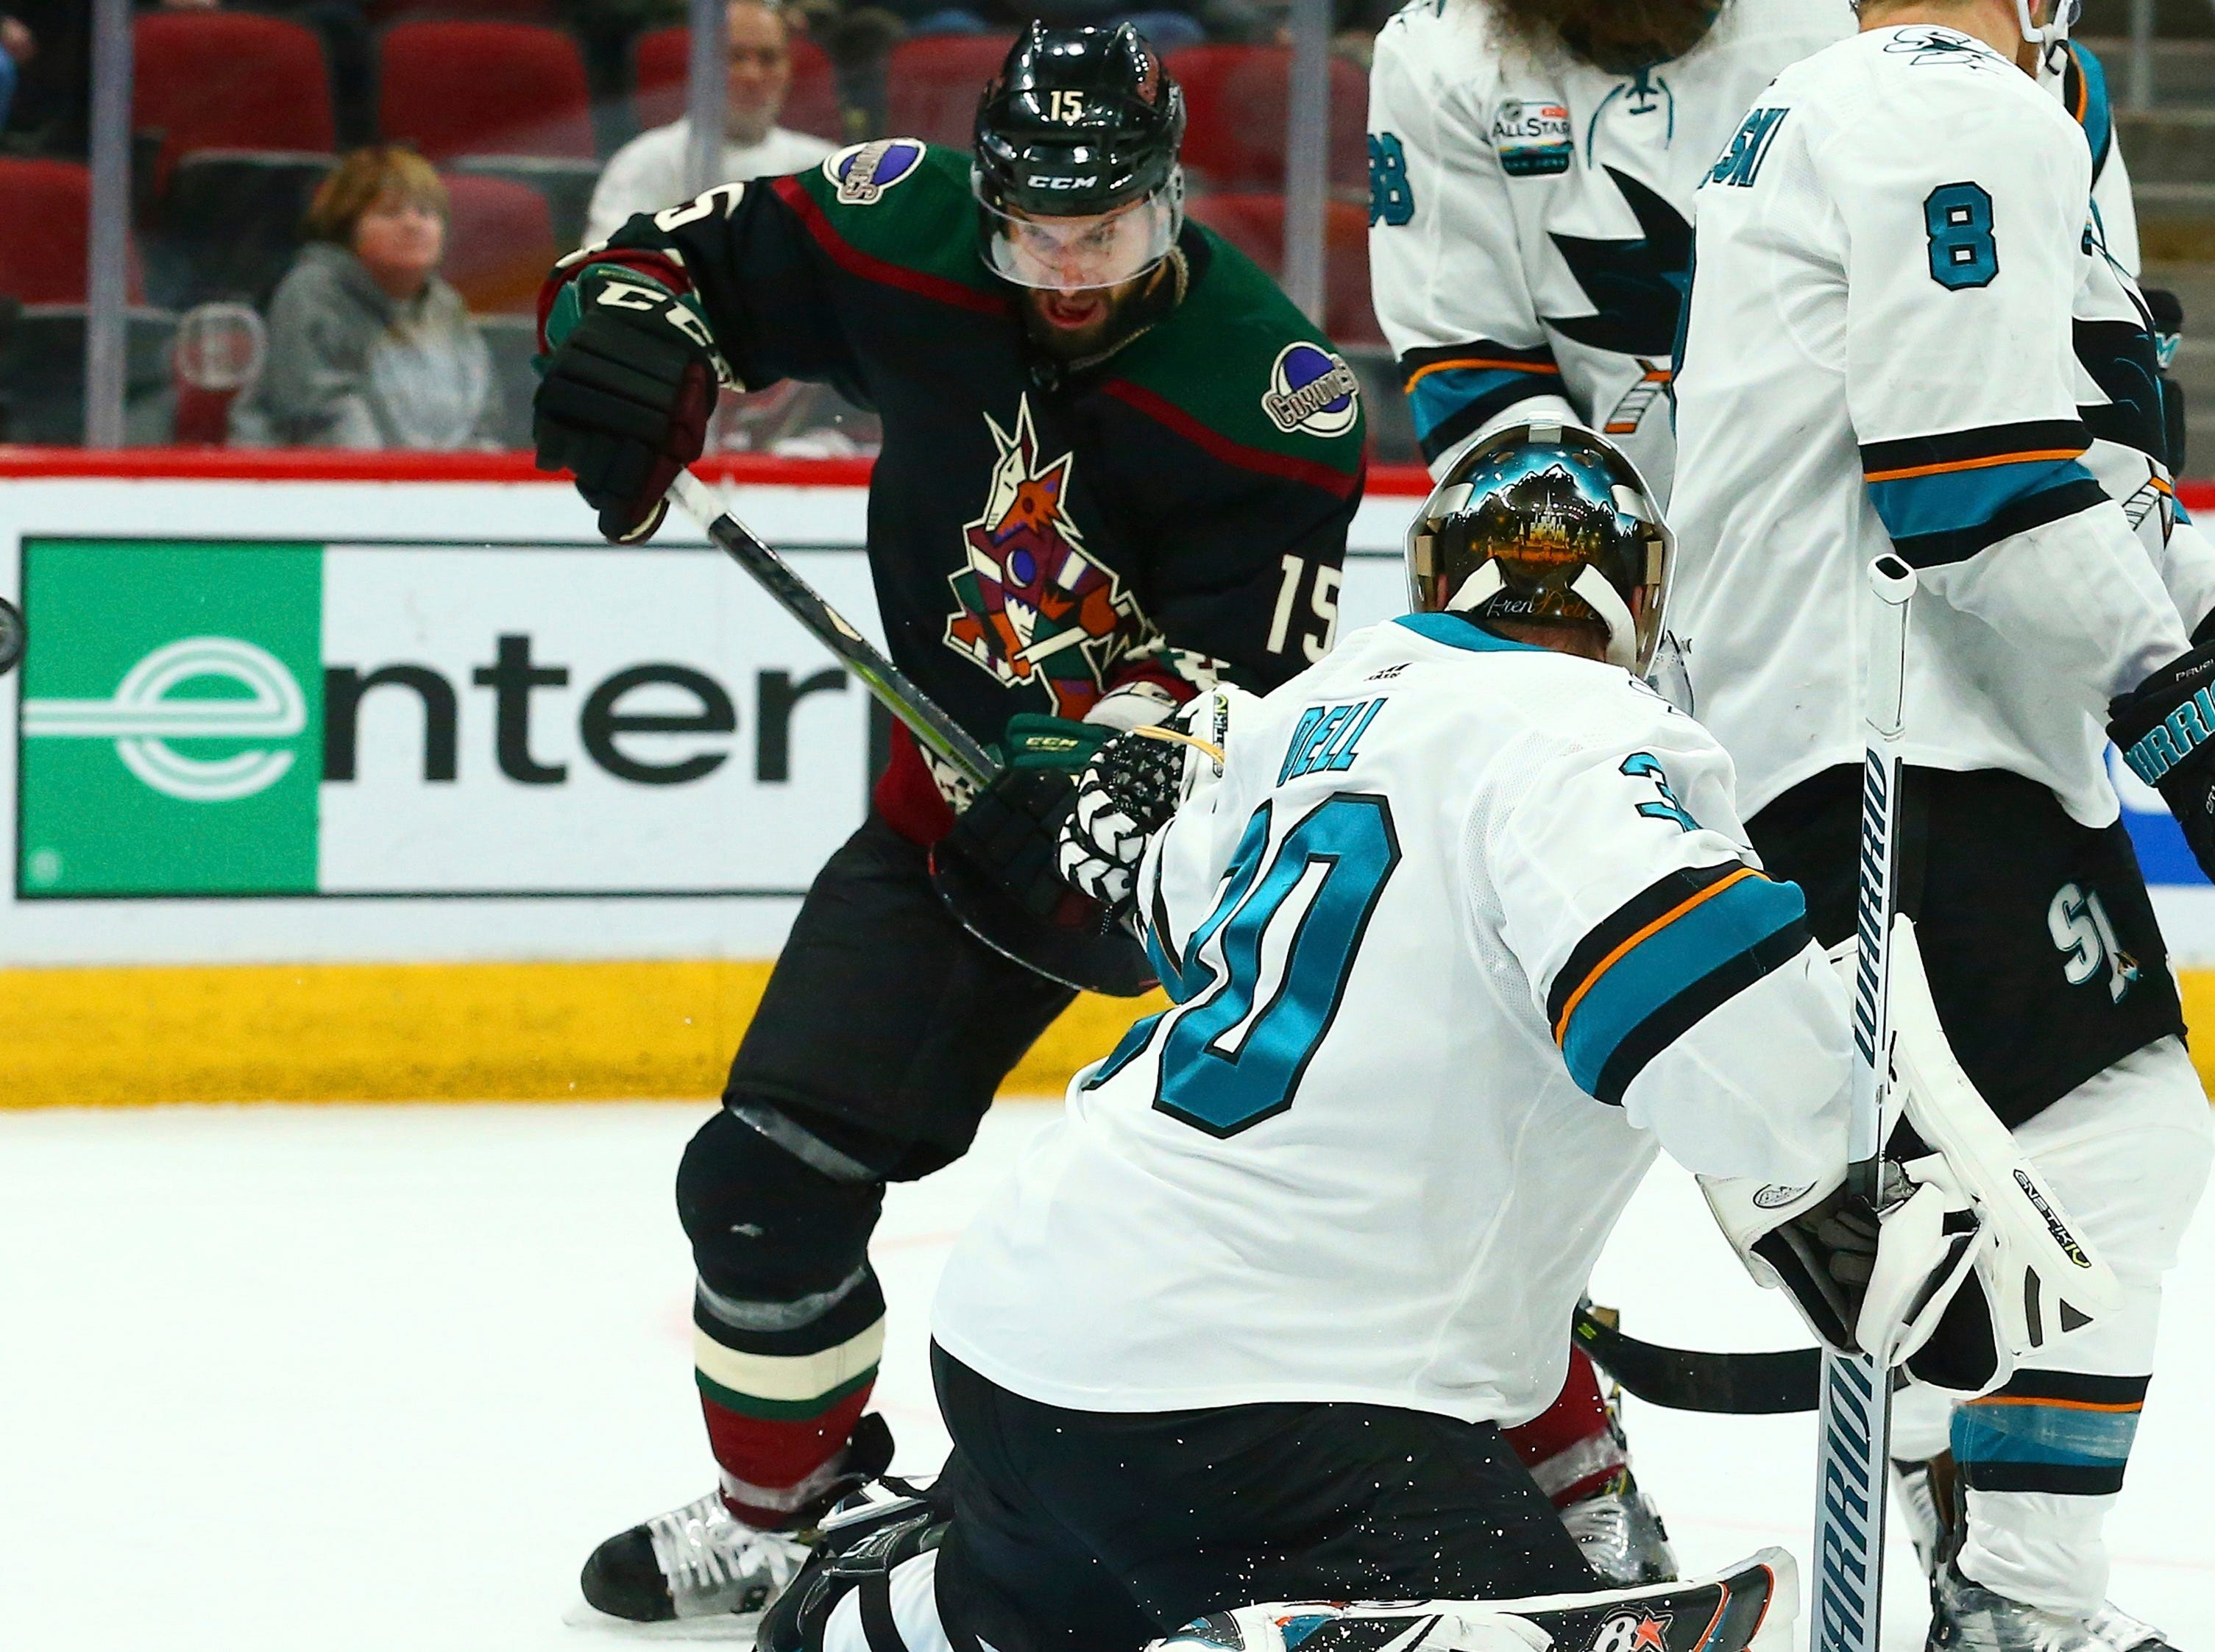 Arizona Coyotes center Brad Richardson (15) redirects the puck past San Jose Sharks goaltender Aaron Dell (30) for a goal during the second period of an NHL hockey game, Saturday, Dec. 8, 2018, in Phoenix. (AP Photo/Ross D. Franklin)